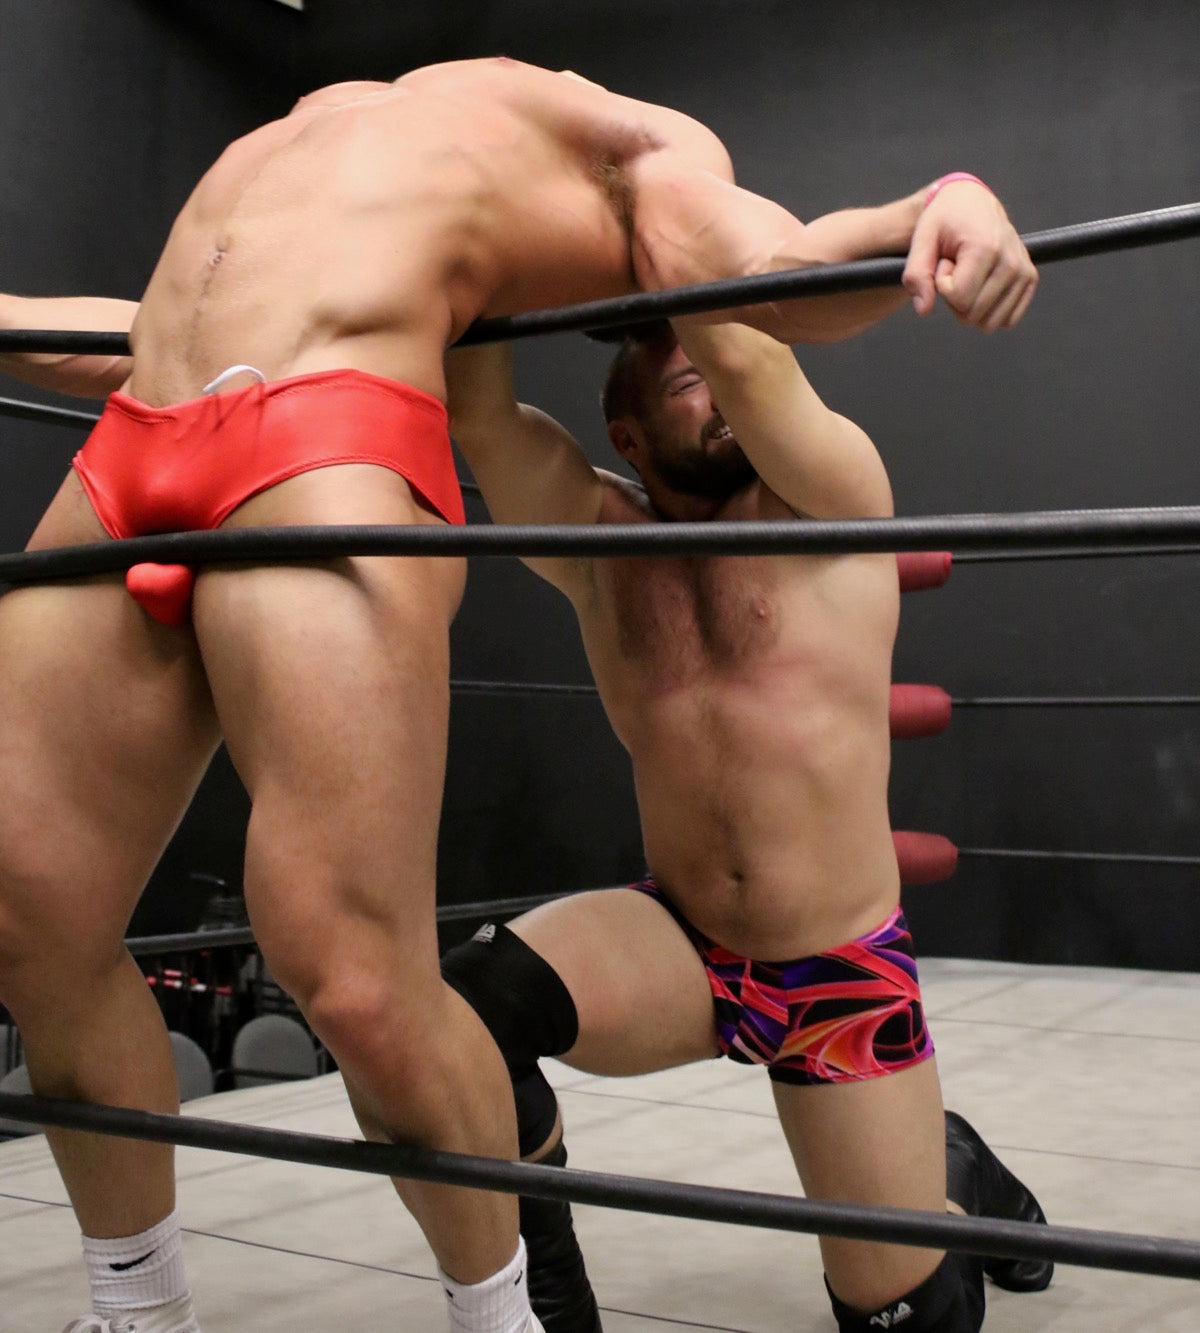 Cason from thunders arena wrestling fucks hot chick - 3 part 9